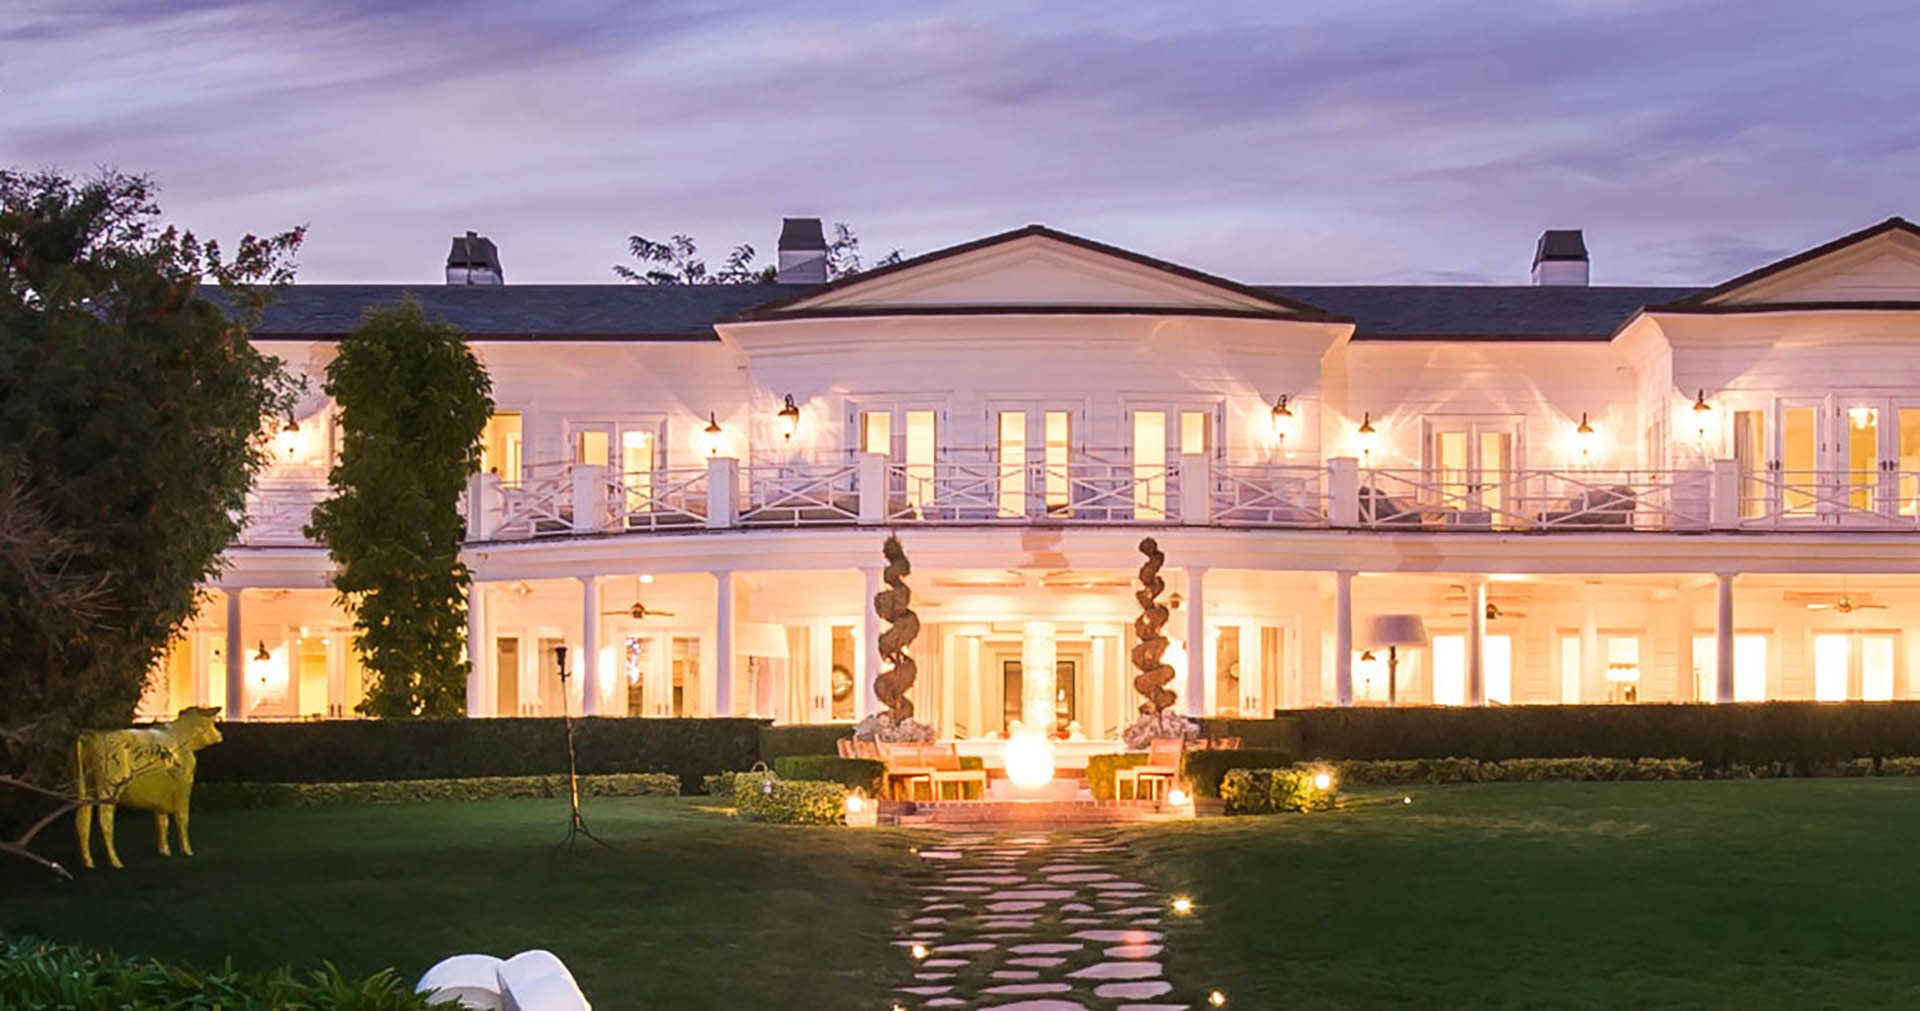 the 10 most expensive u.s. homes | insidehook